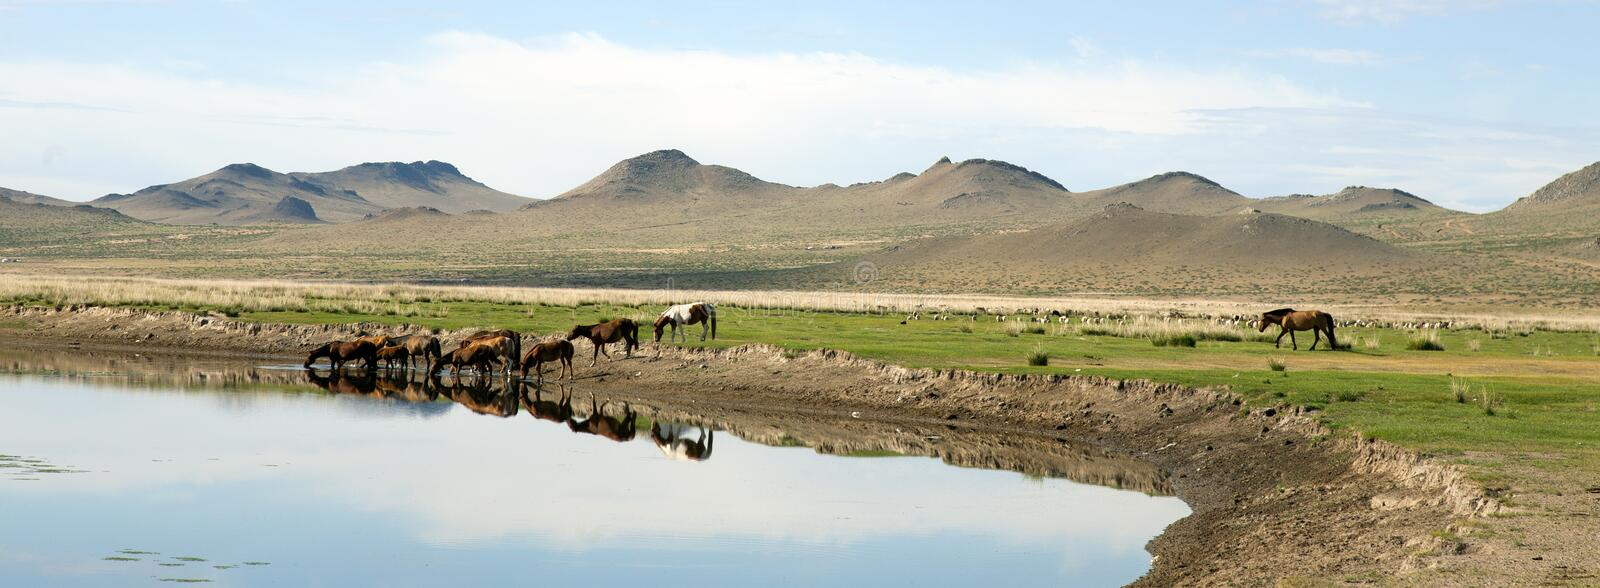 Horses Drink from a River